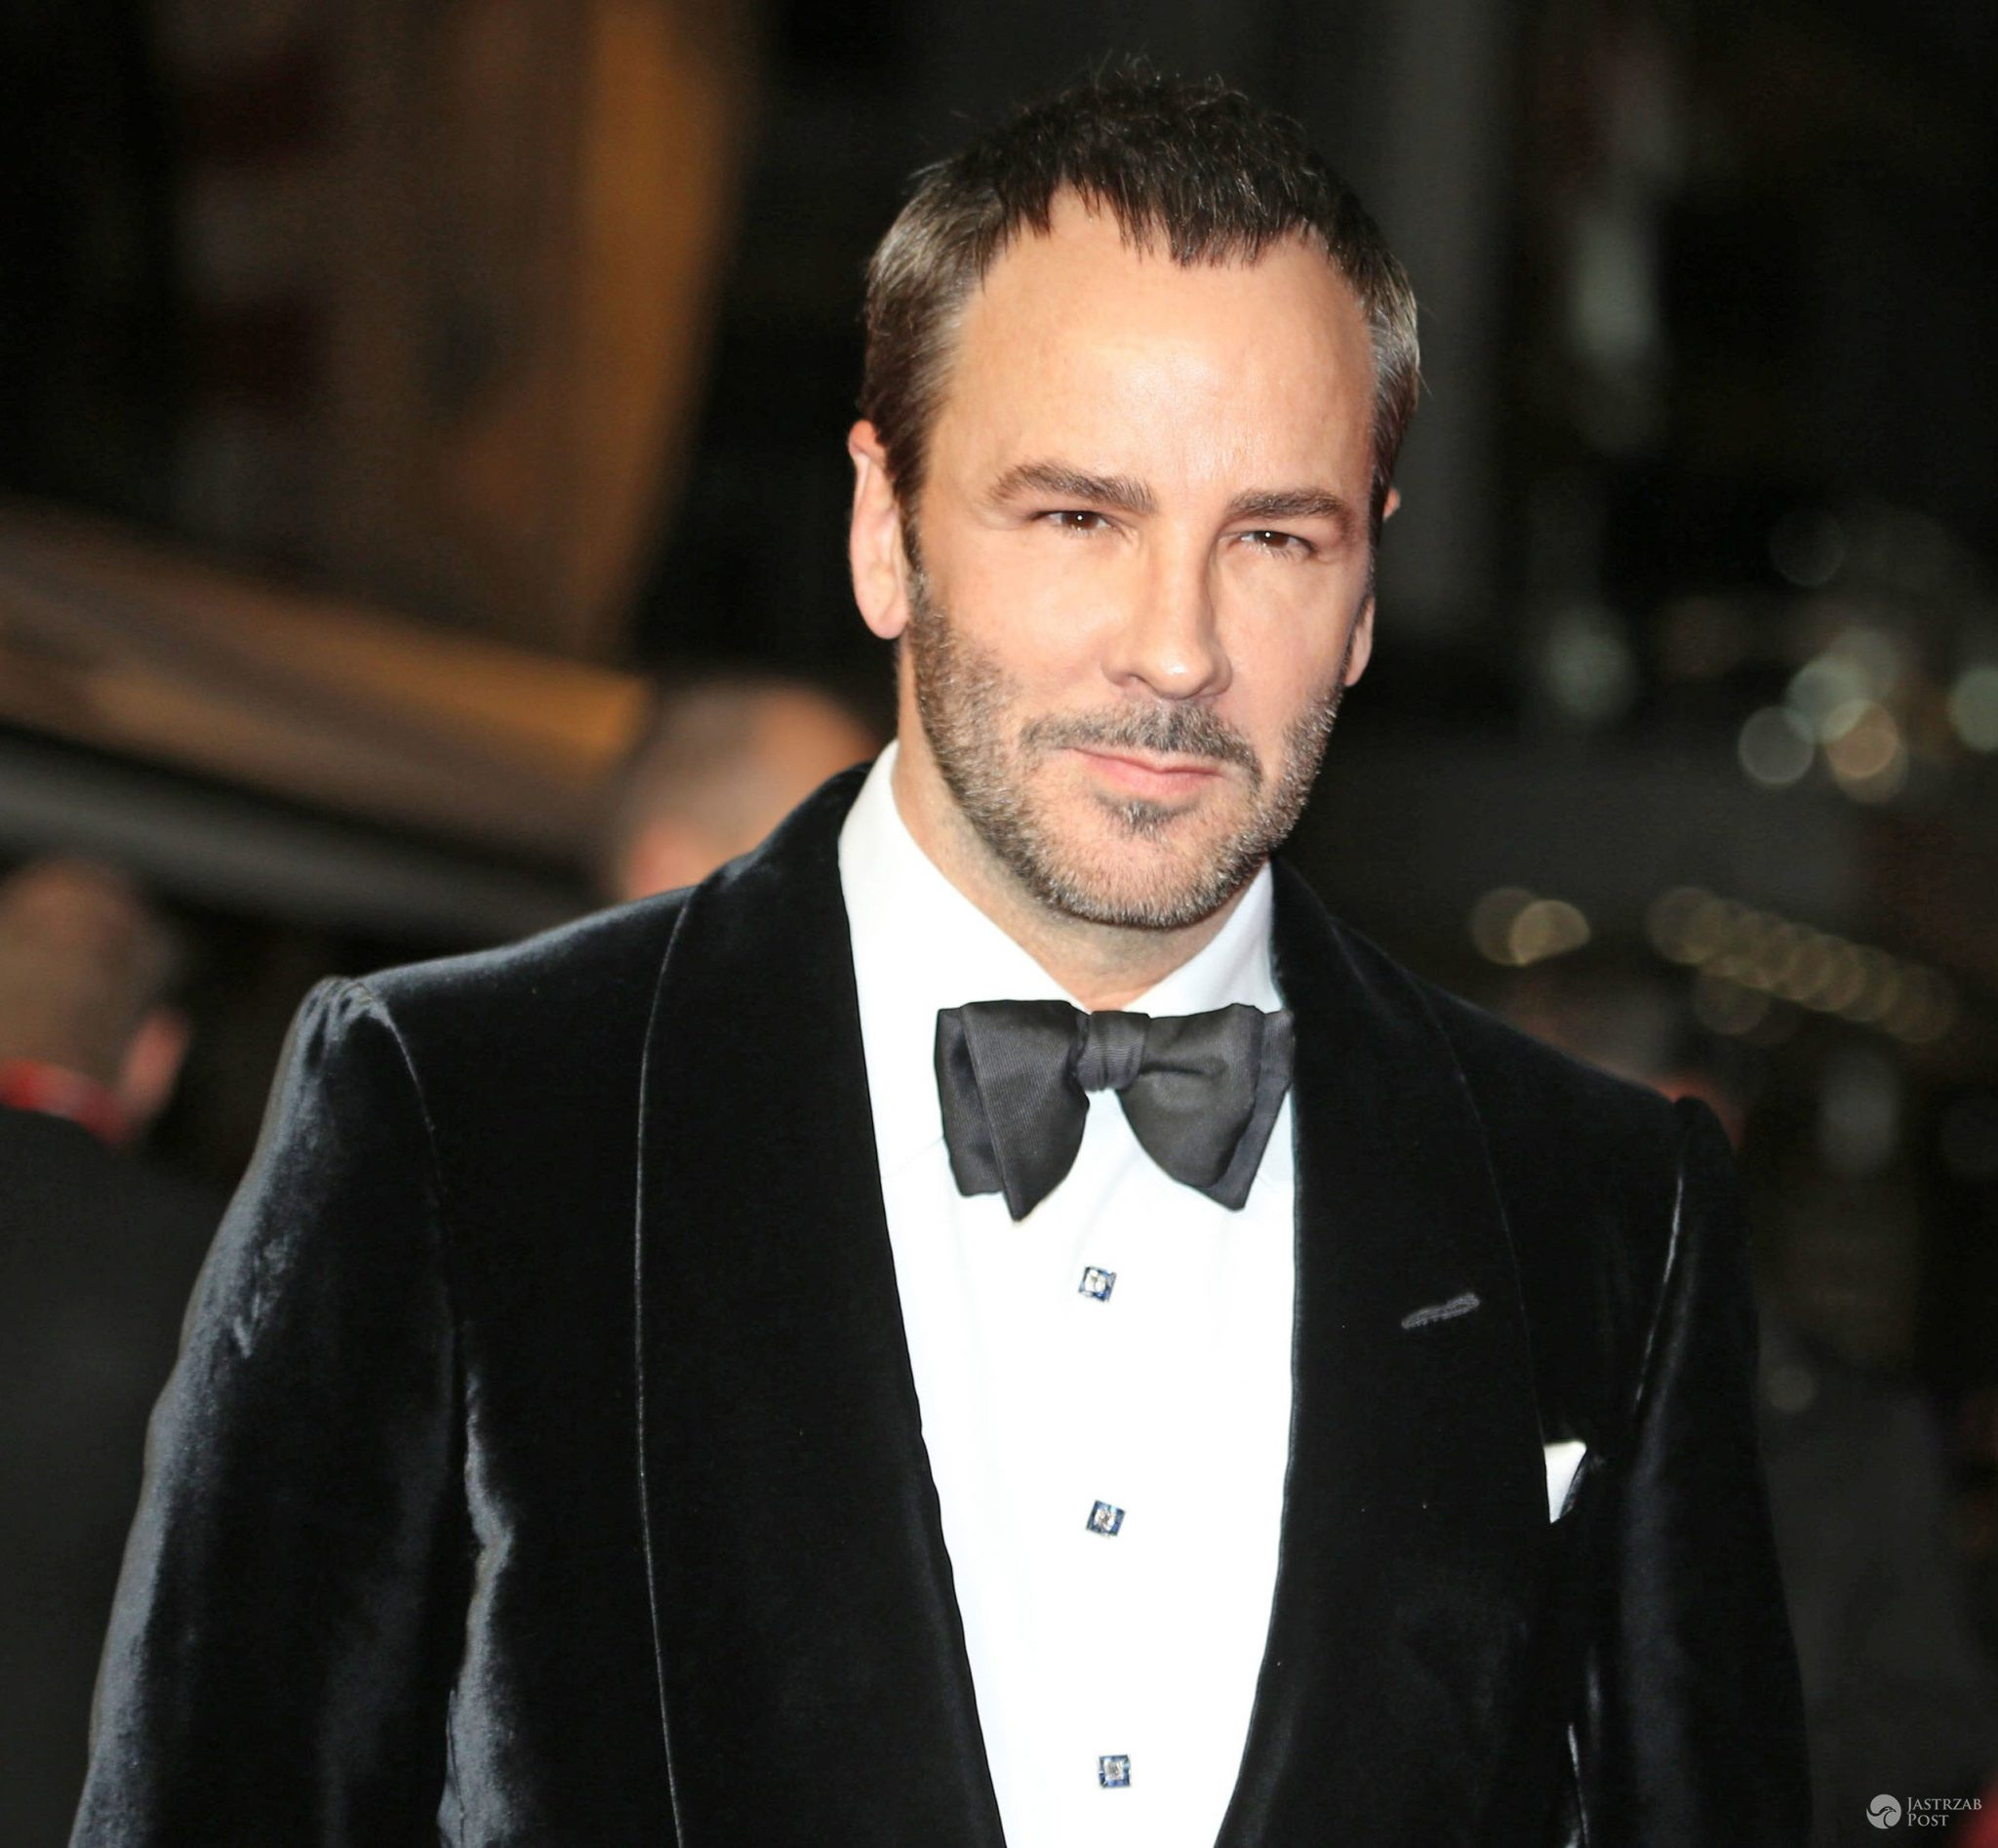 Tom Ford (fot. ONS)